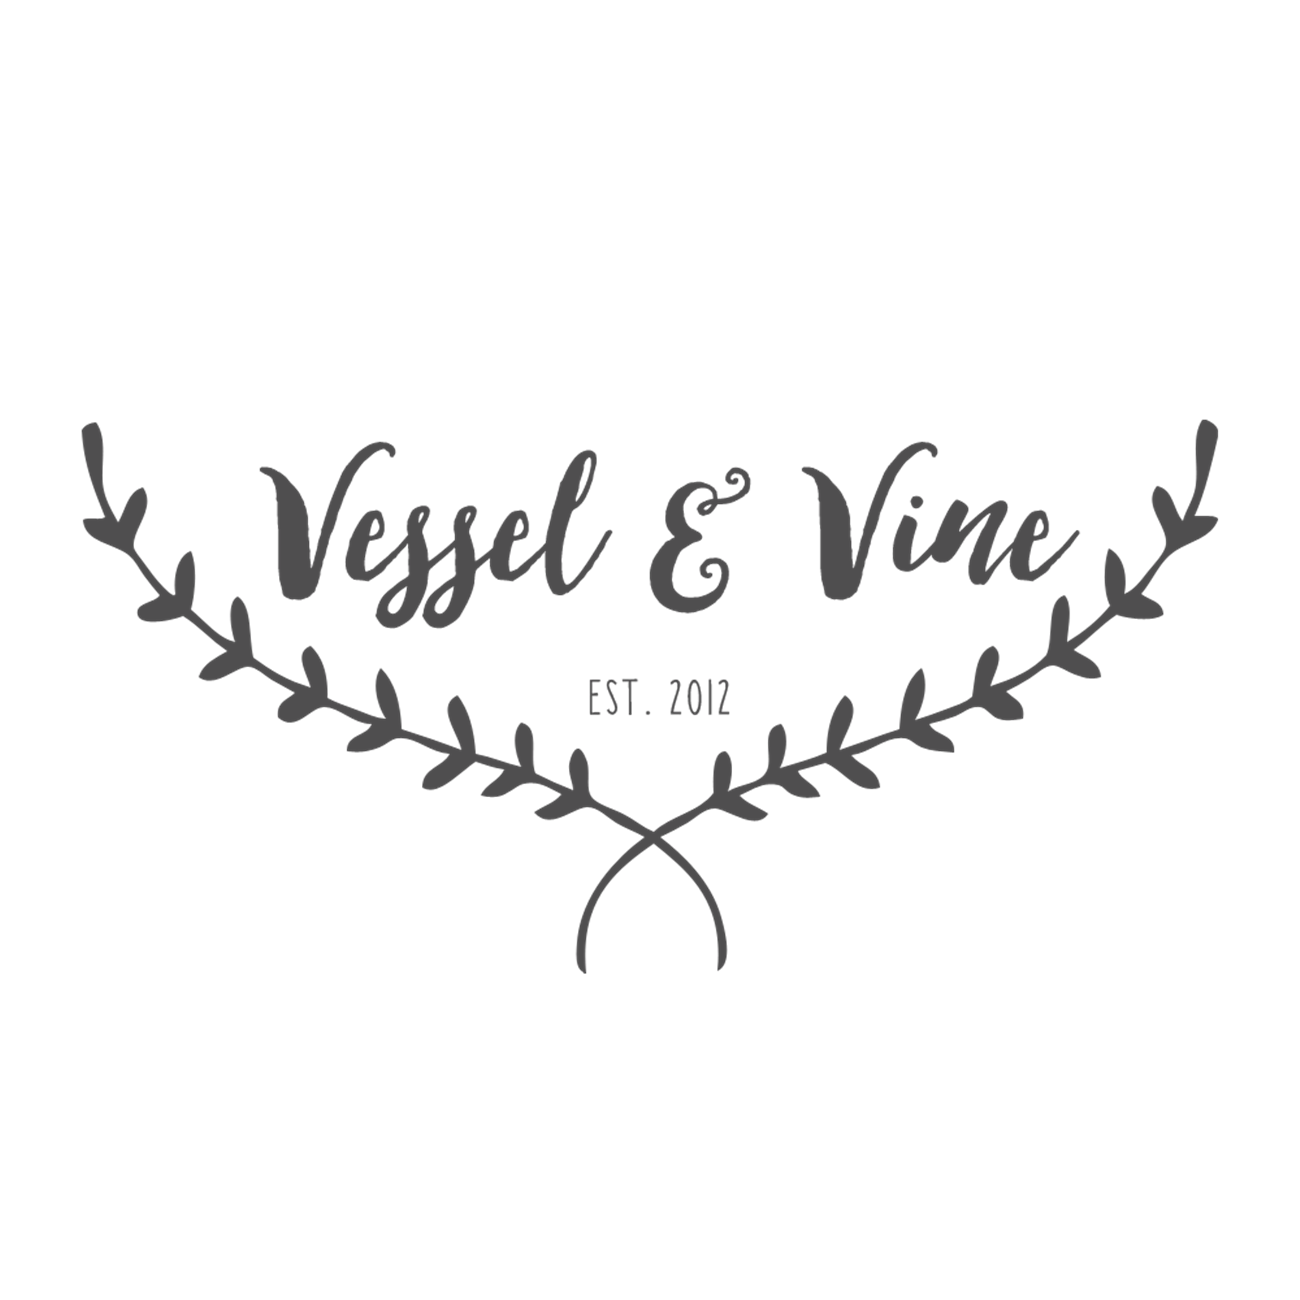 Vessel and Vine